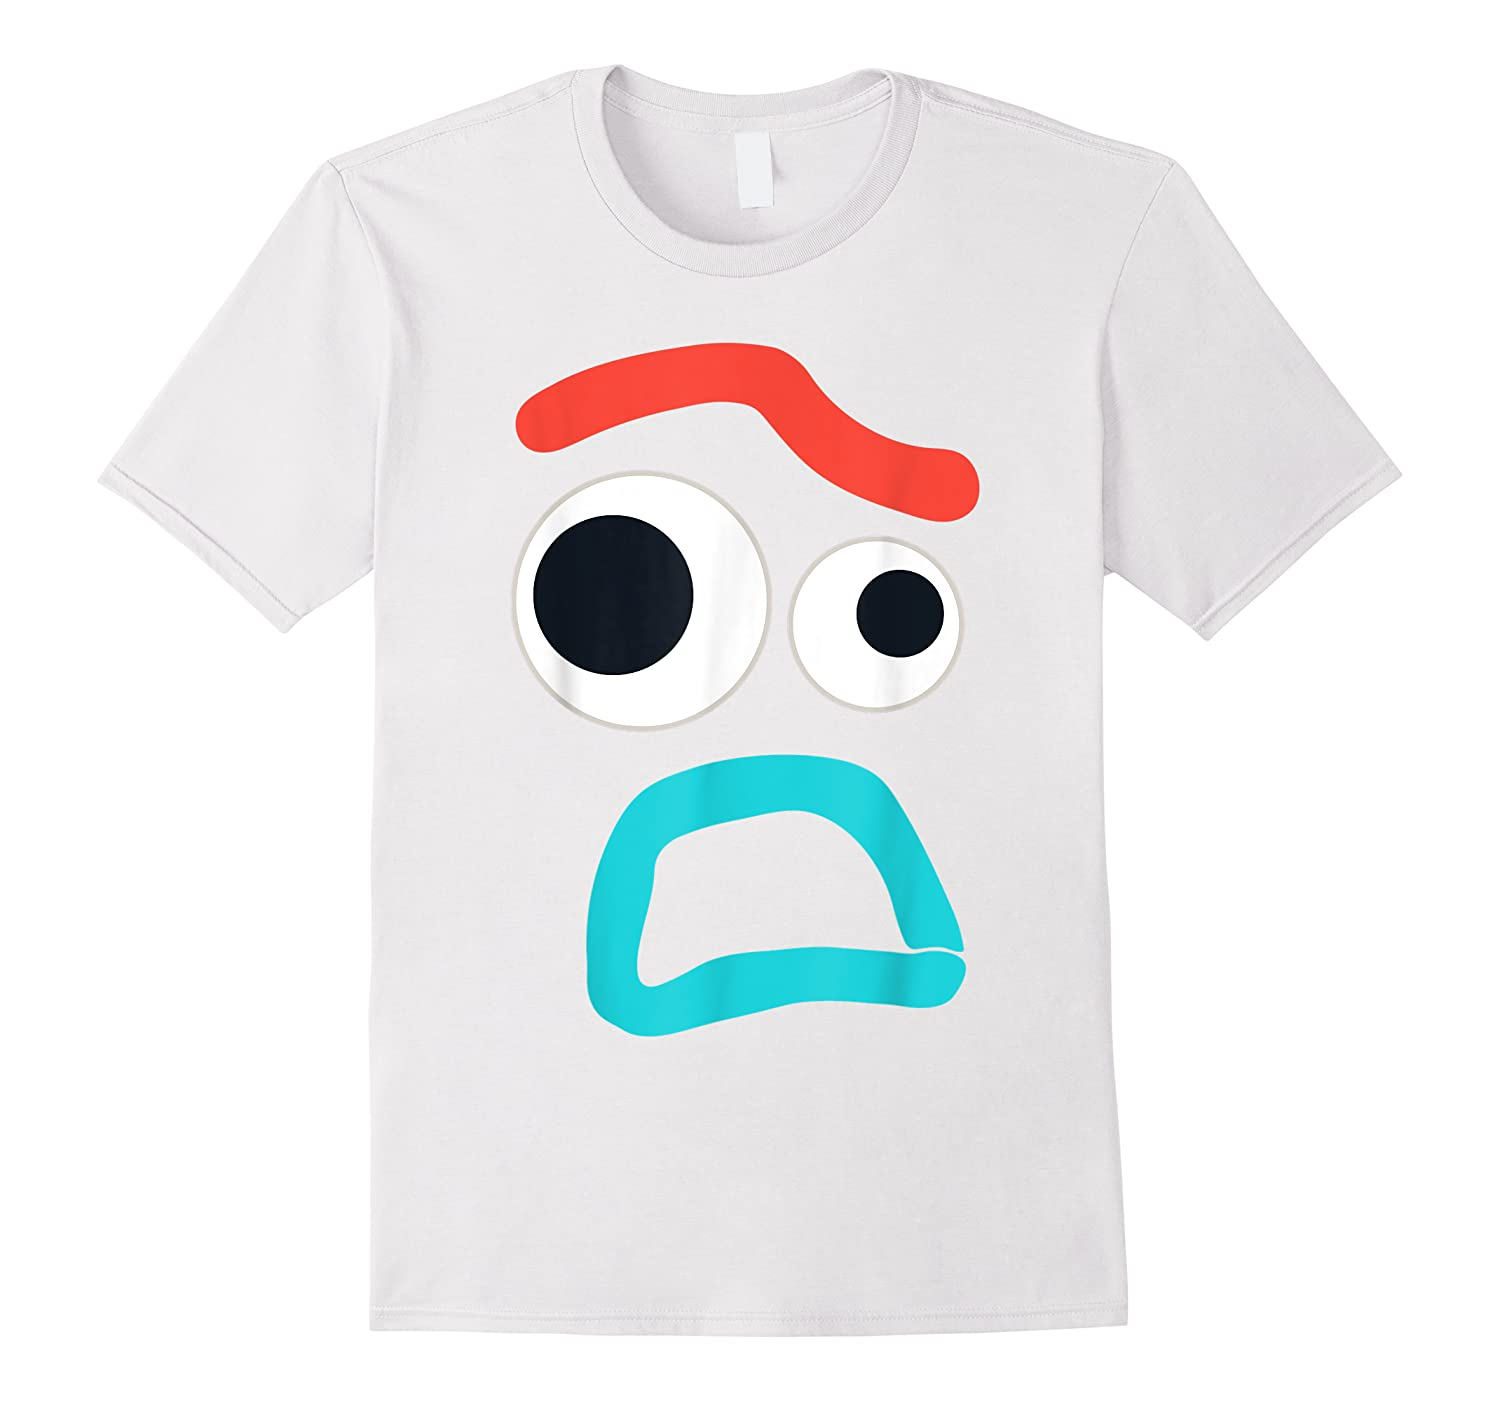 And Pixar Toy Story 4 Forky Timid Face Costume Shirts